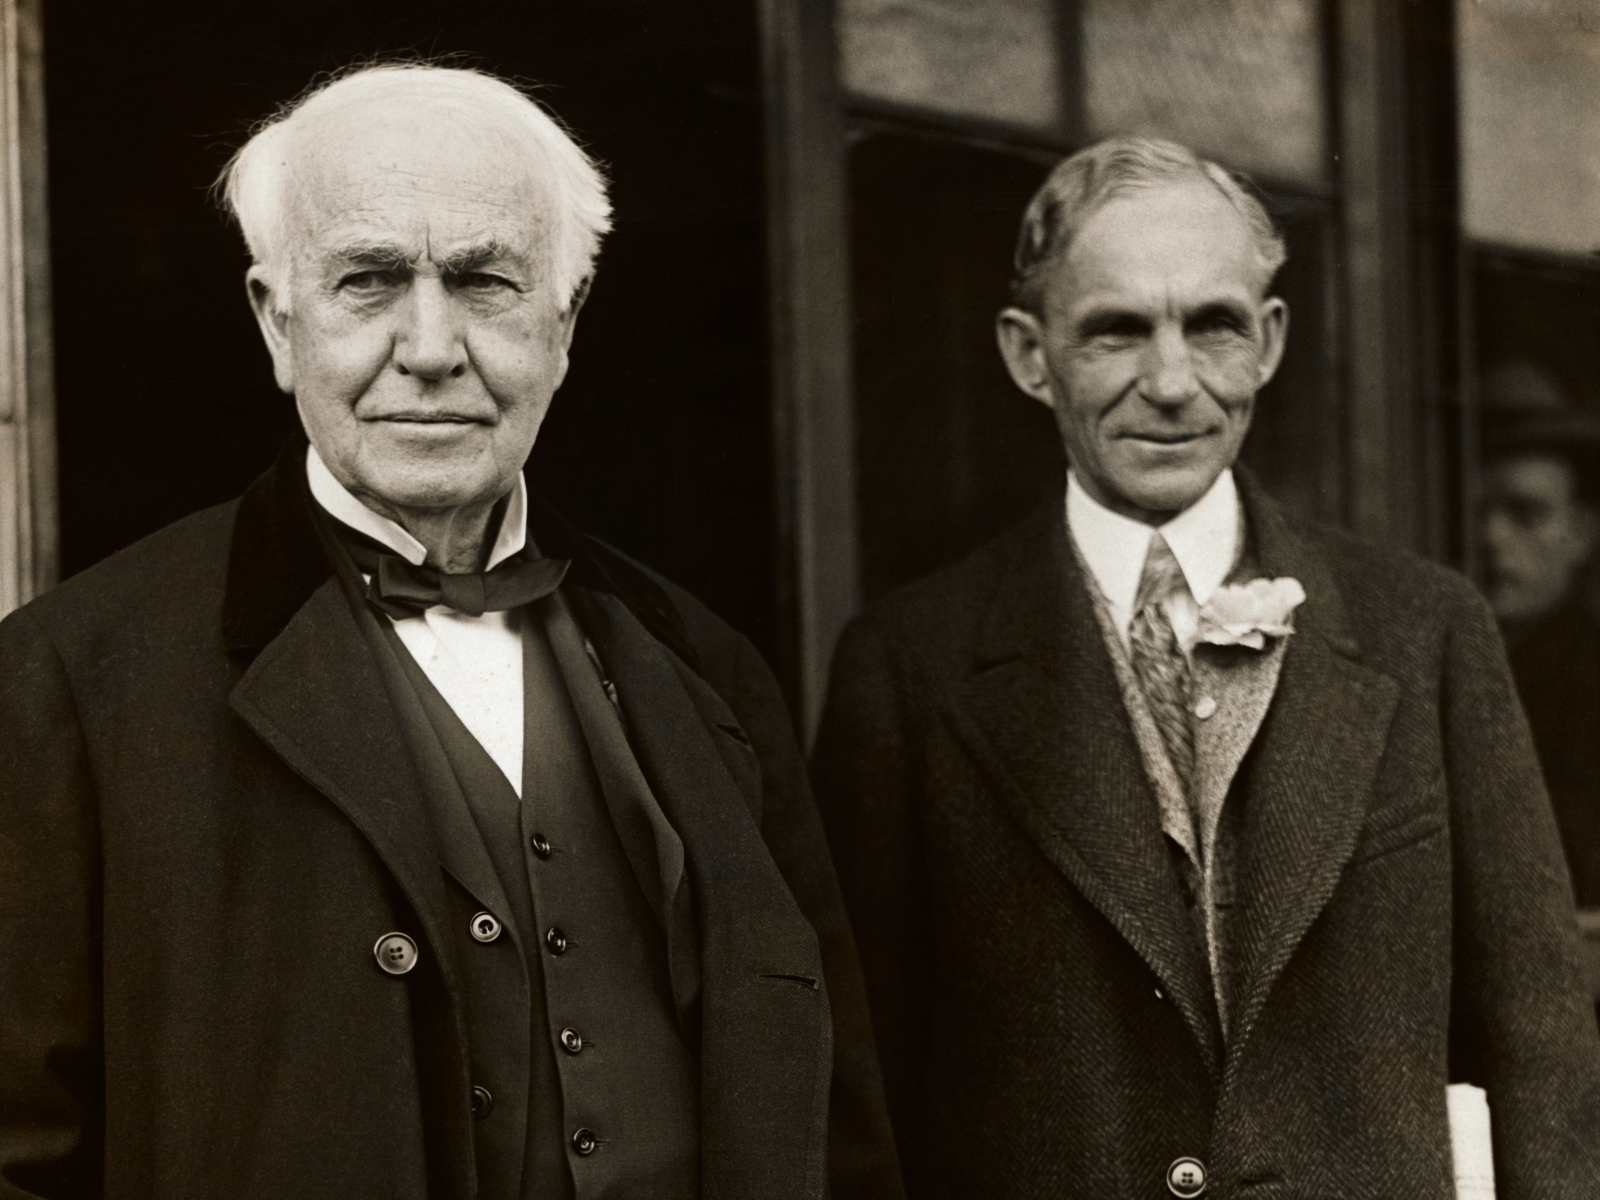 Thomas Edison and Henry Ford